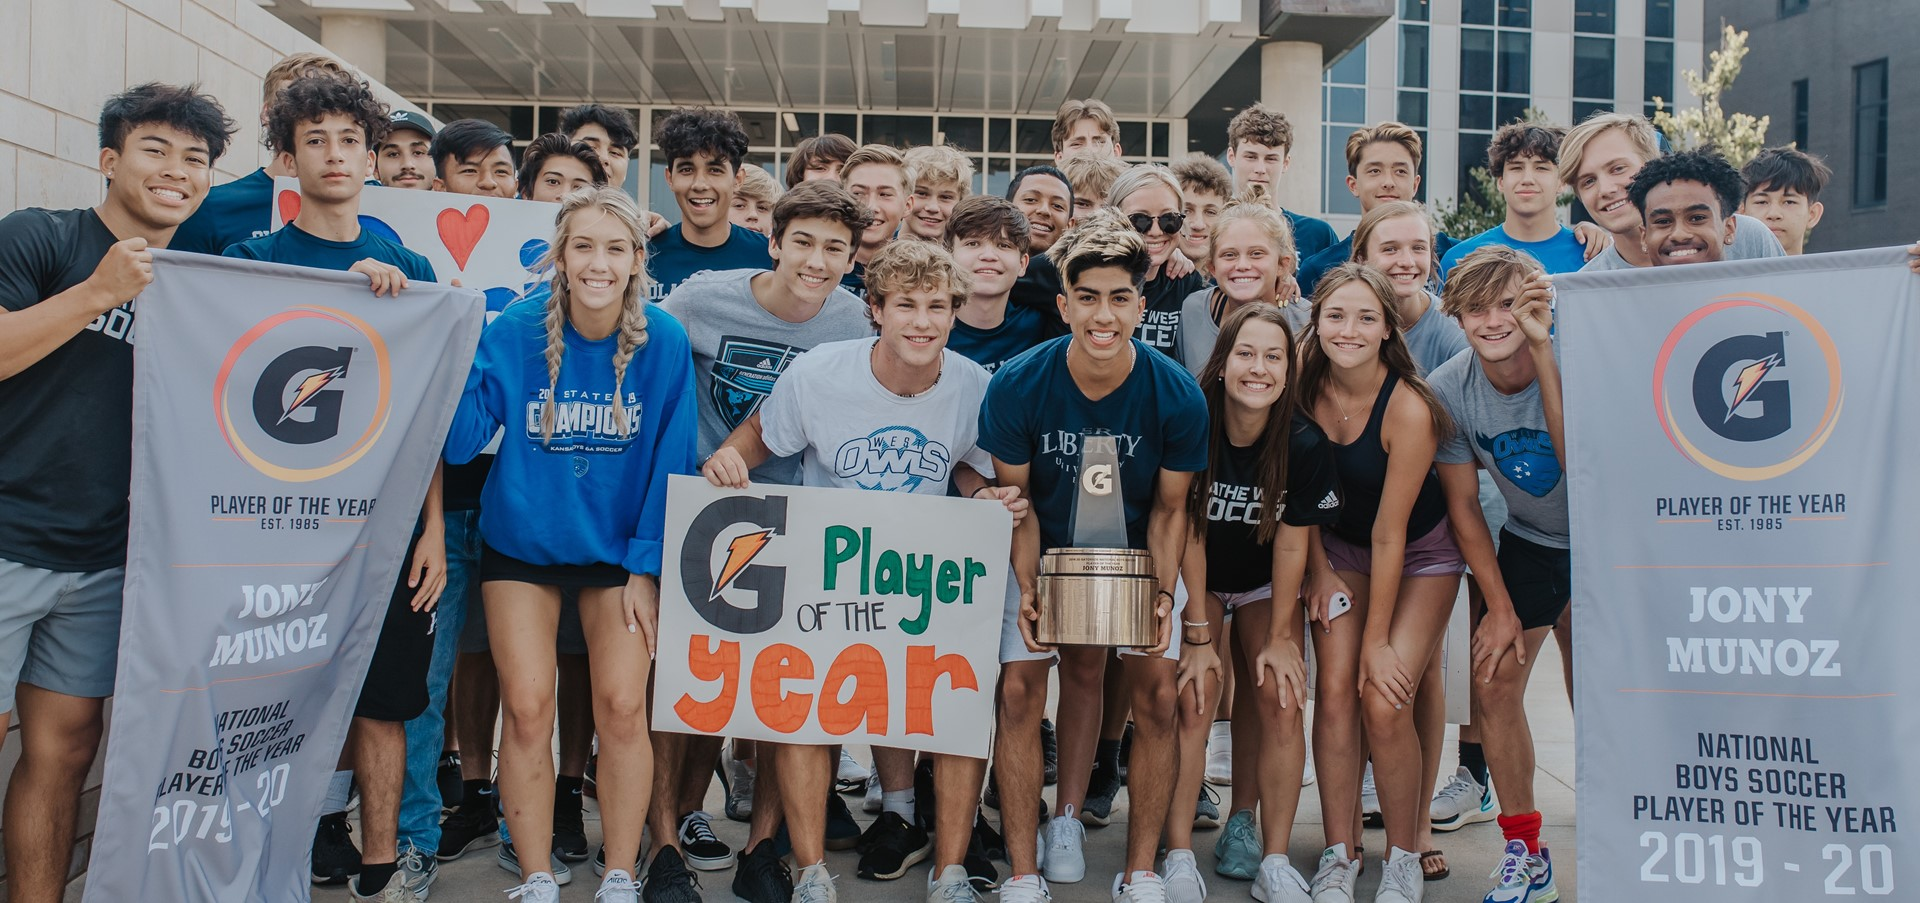 JONY MUNOZ NAMED 2019-20 GATORADE® NATIONAL BOYS SOCCER...